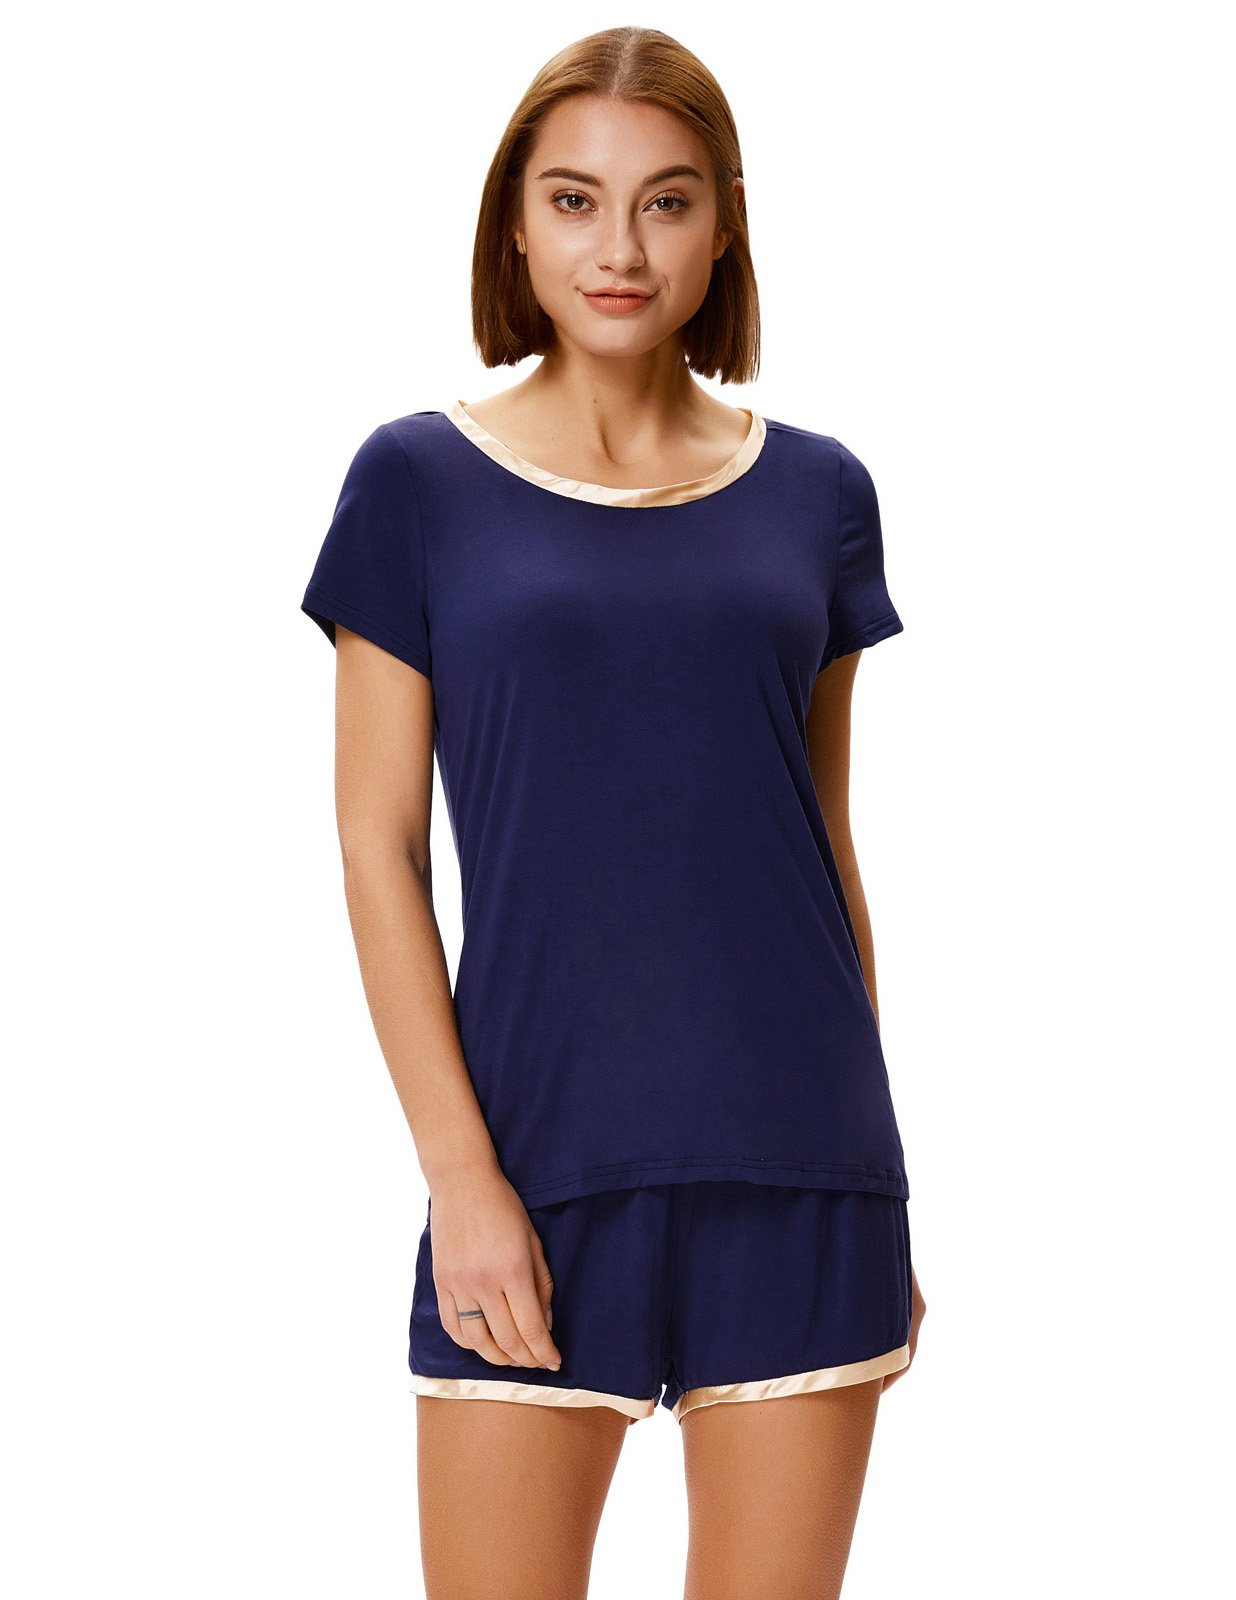 Zexxxy Short Sleeve PJS for Women Two Piece with Satin Neckline for Summer Navy Blue M